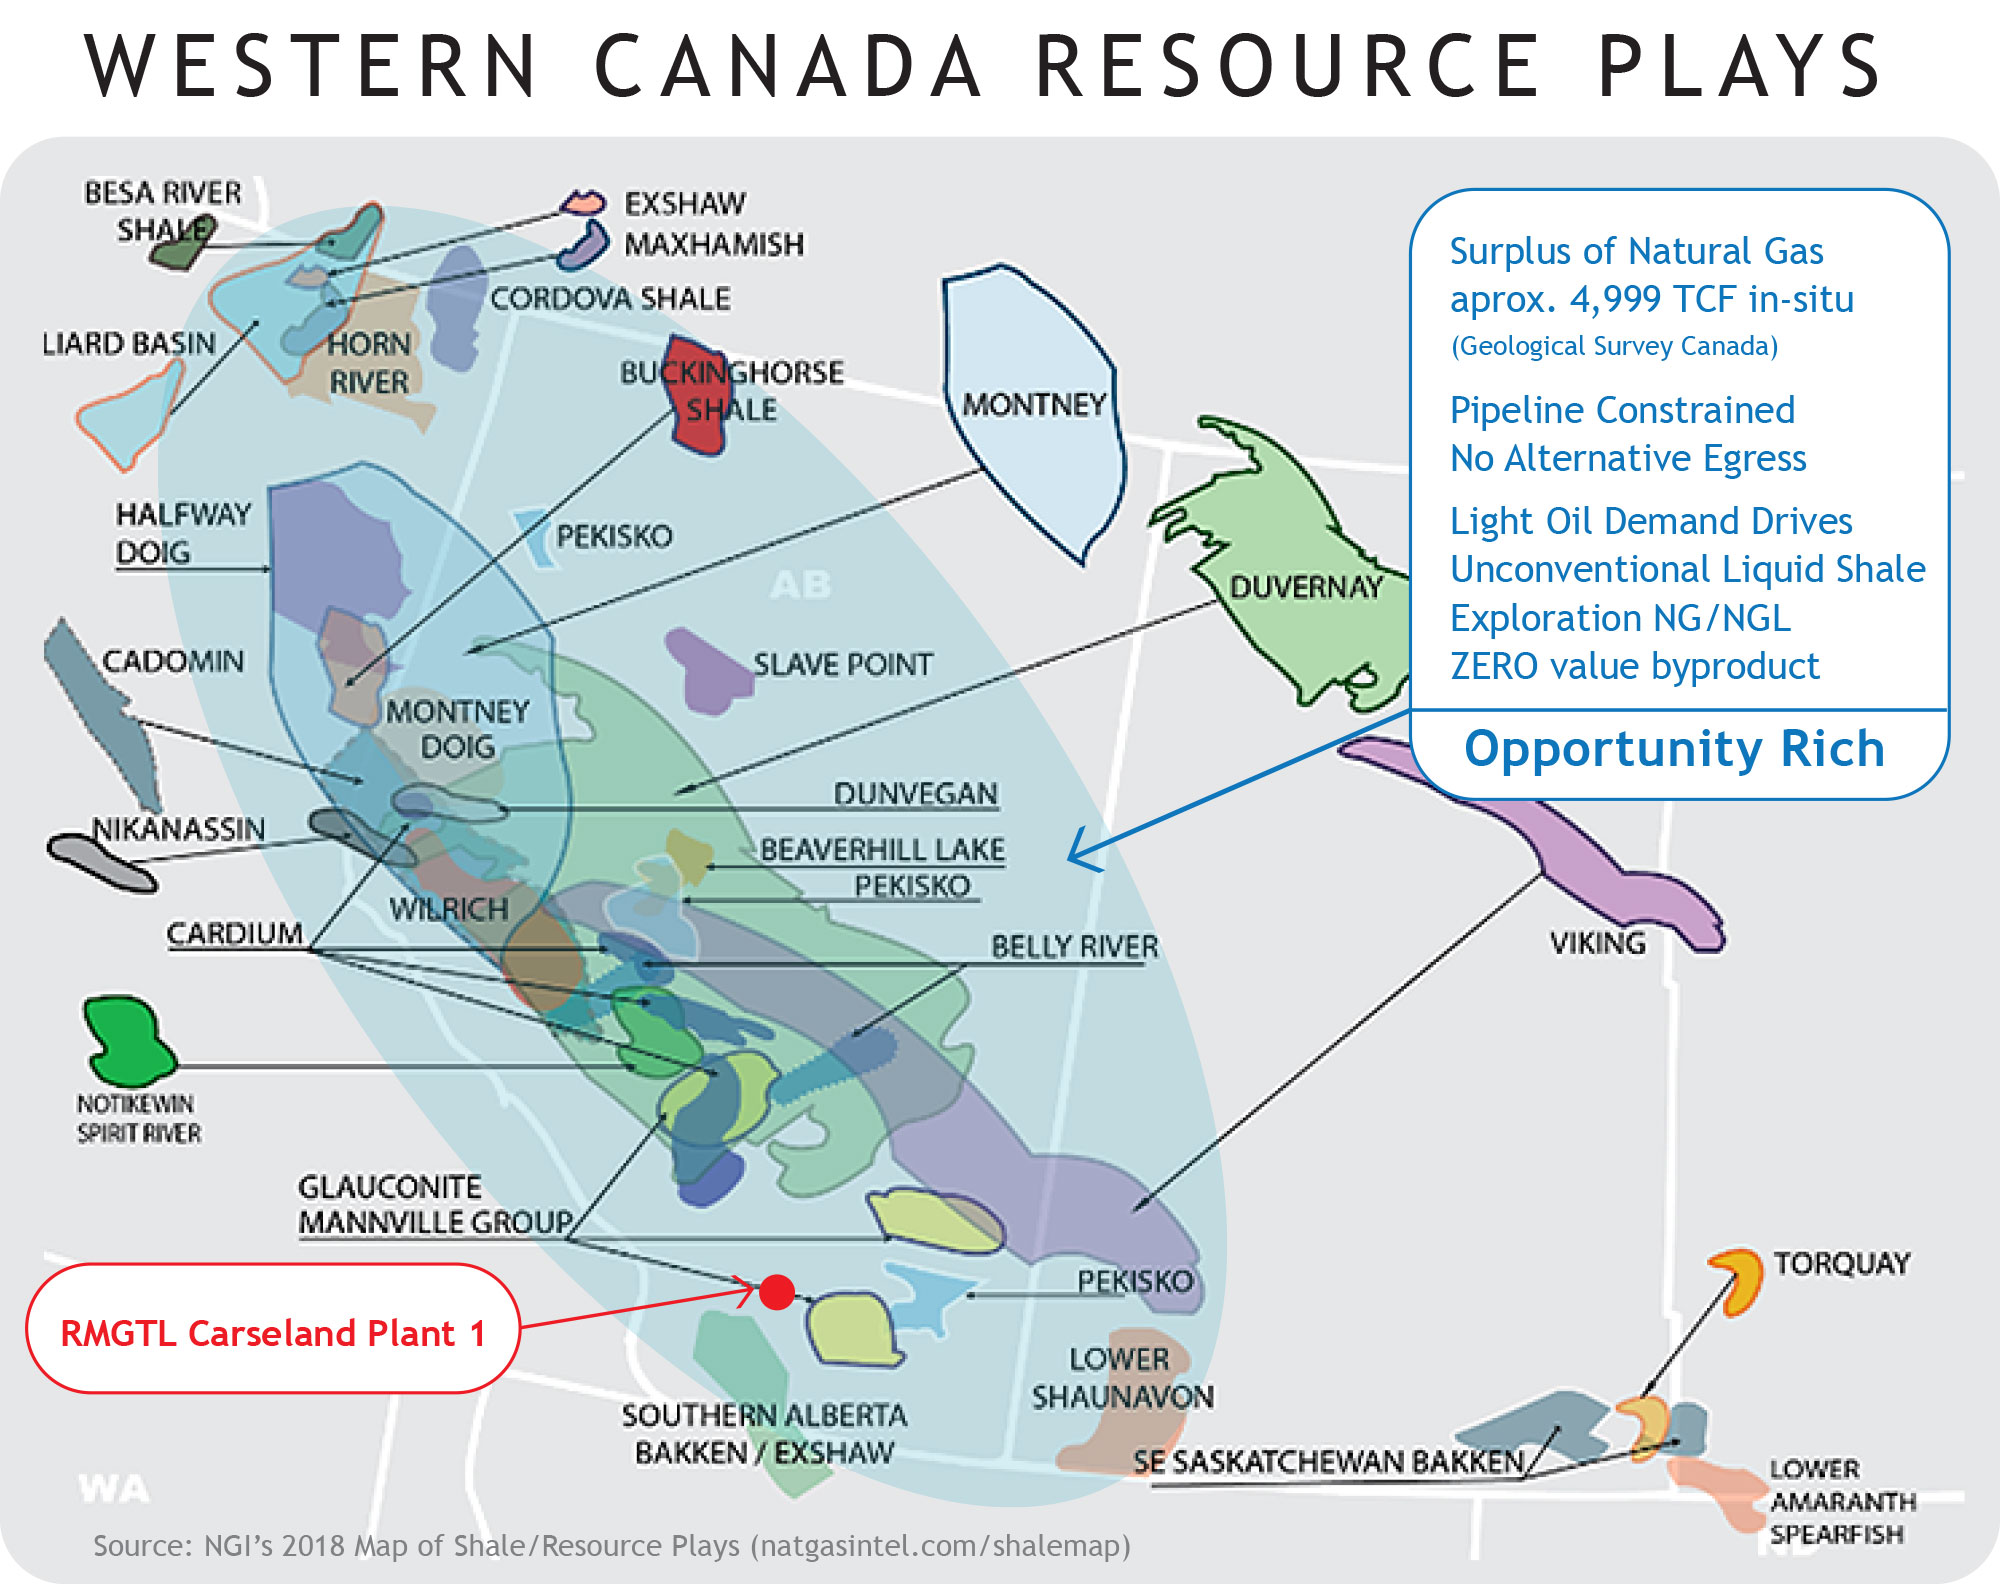 Western Canada Resource Plays